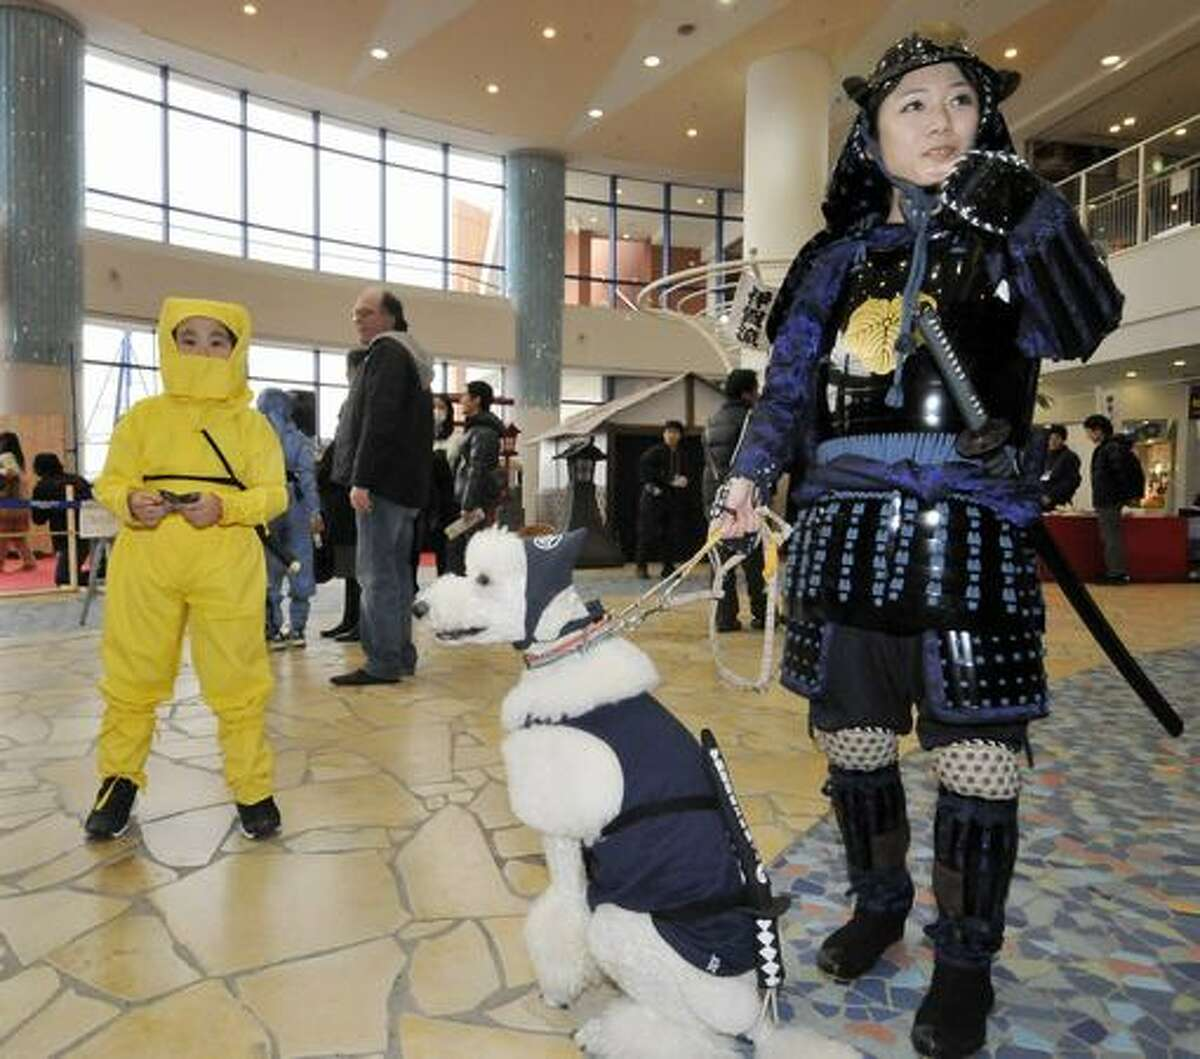 A dog dressed like a ninja is led by a woman dressed in a samurai costume as a girl dressed in a ninja costume looks on during a festival at a shopping mall in Tokyo on February 5, 2011. Some 80 people in ninja costumes from the city of Iga in Mie Prefecture held the event to promote tourism in Iga, which hosts a ninja museum as well as an annual ninja festival. A ninja was an assassin or spy in feudal Japan (circa 15th century), usually trained for stealth, espionage and other unorthodox arts of war.